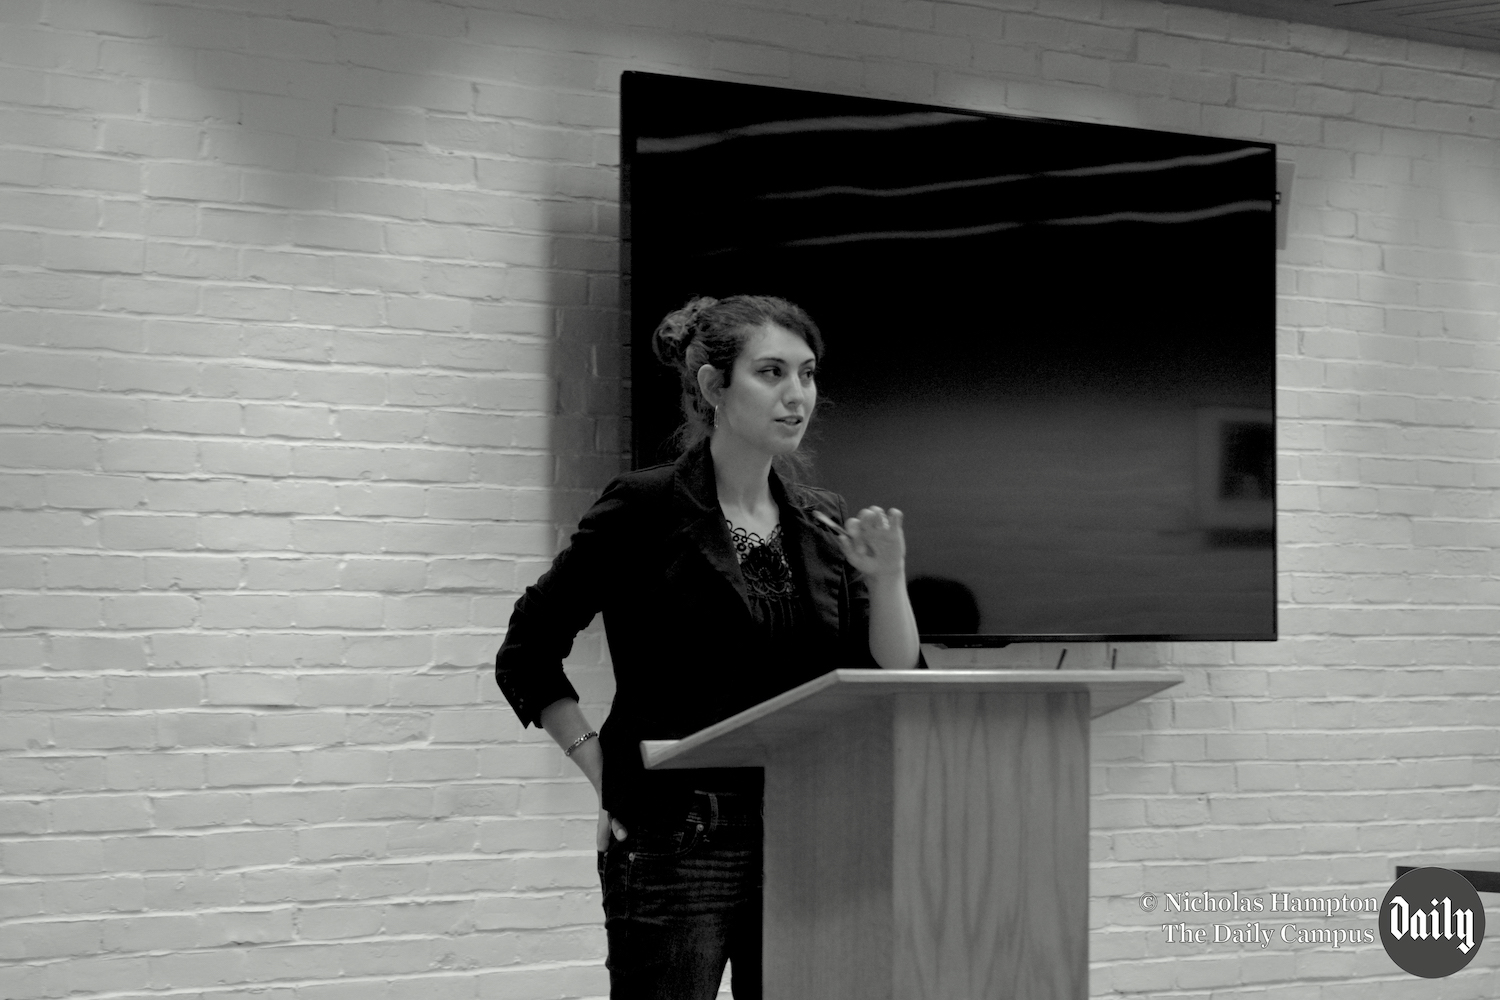 A black and white photo showing Dr. LaGuardia-LoBianco delivering a talk at the UCHI Center at the University of Connecticut in Storrs, where she completed her graduate work